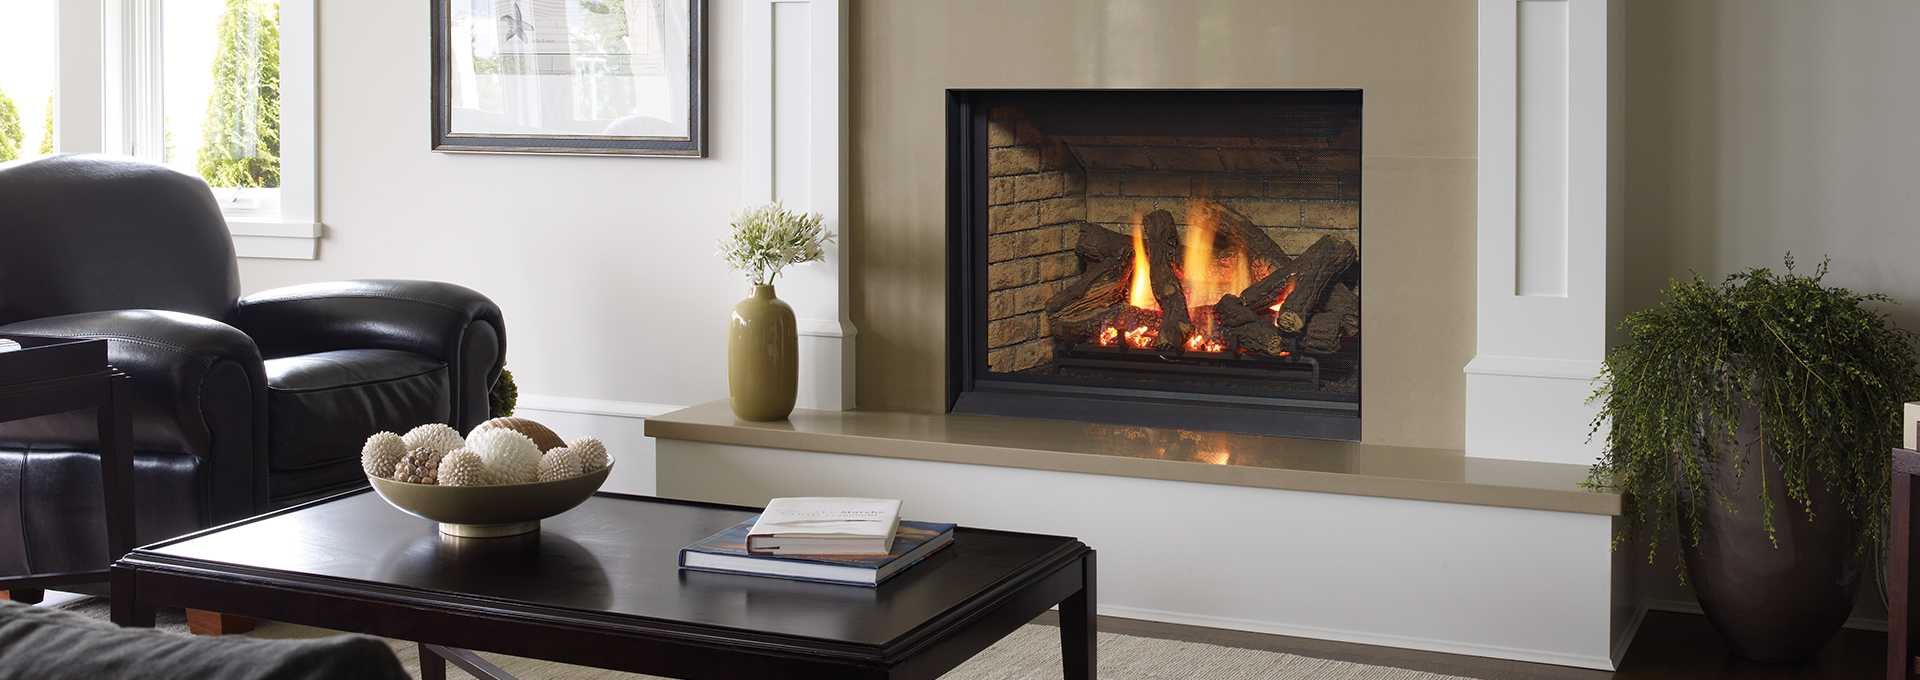 Gas Fireplace Starter Pipe Traditional Gas Fireplaces Regency Fireplace Products